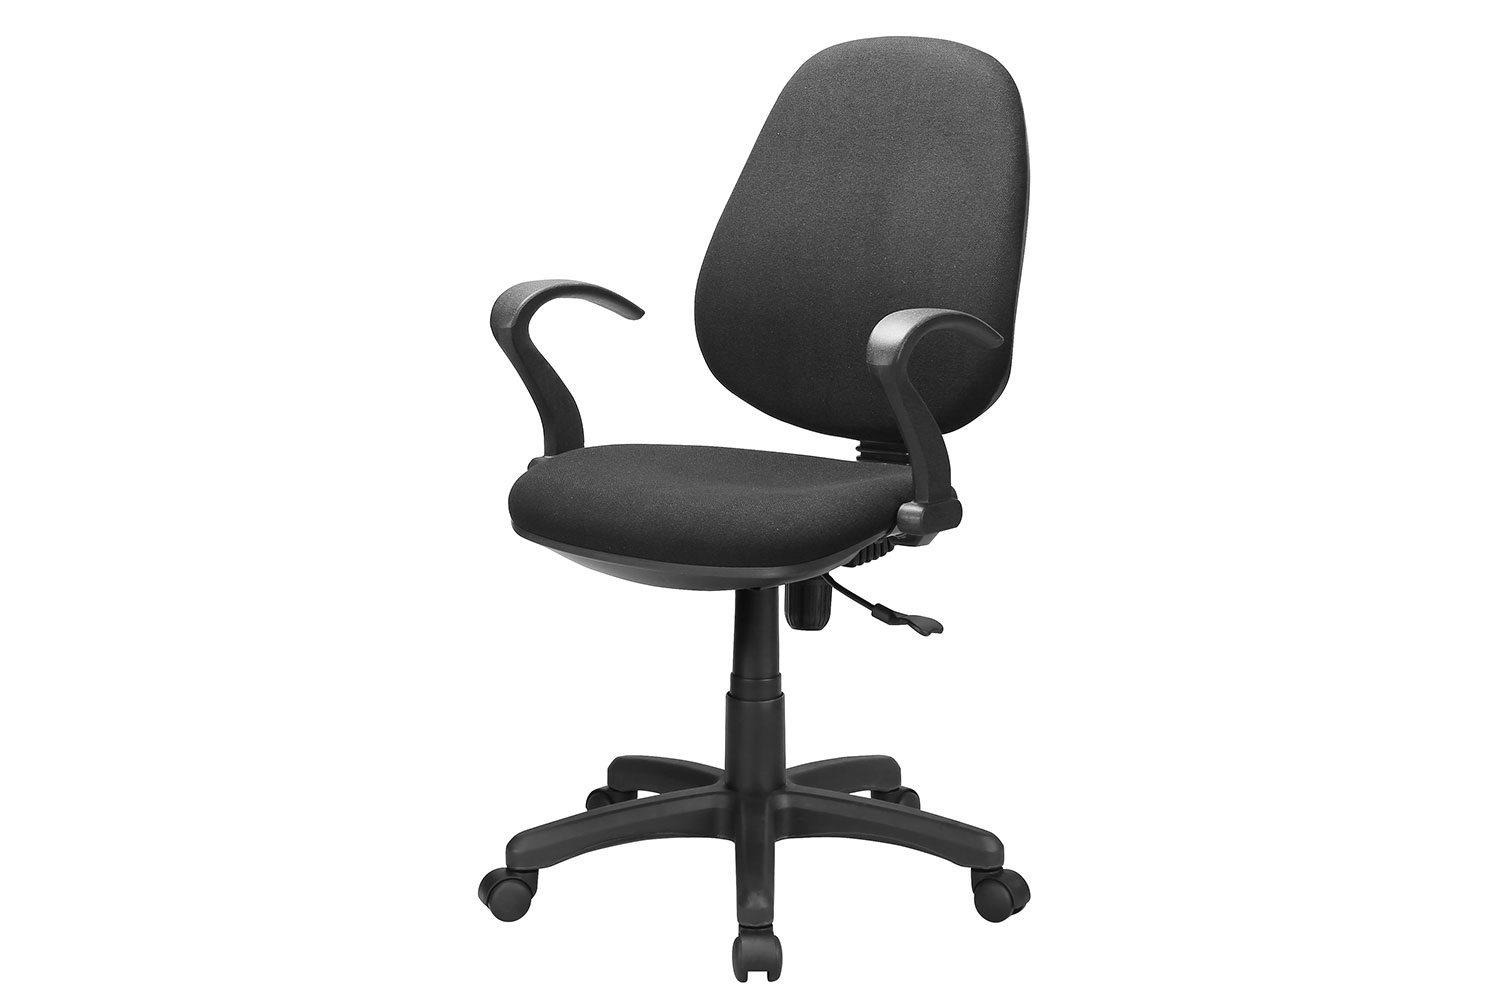 desk chair harvey norman resistance accessories ozzy office new zealand